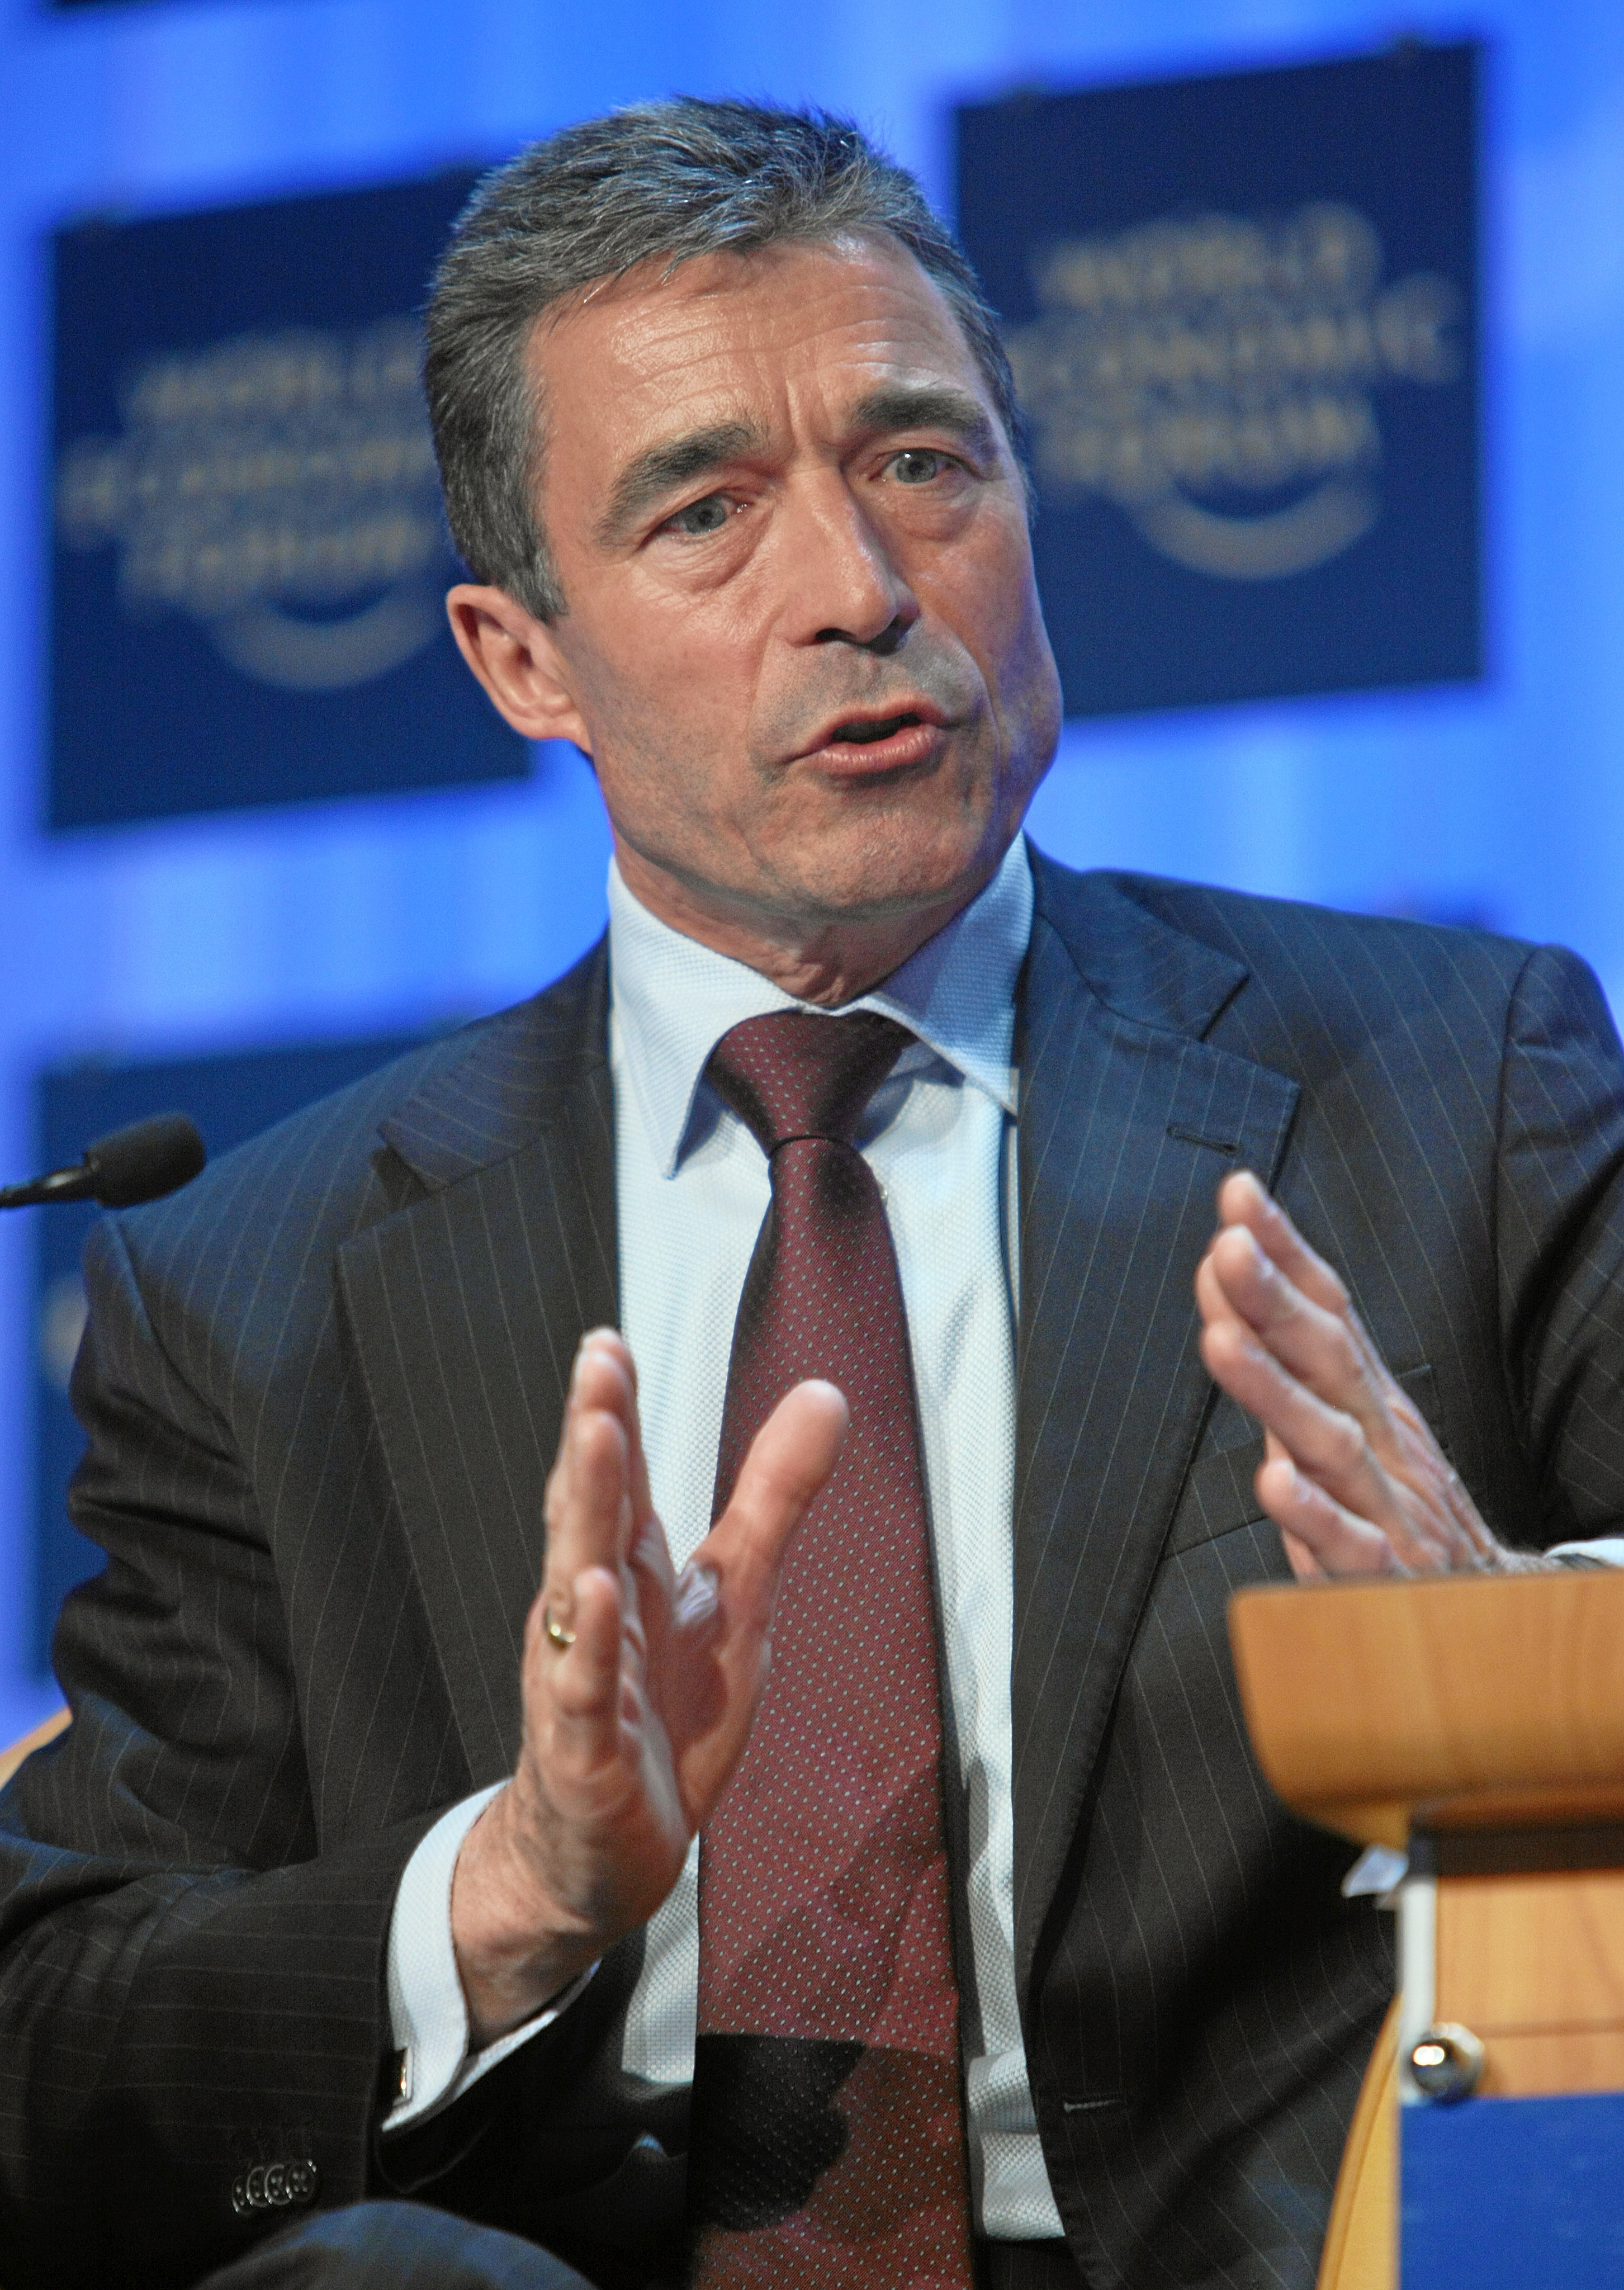 http://upload.wikimedia.org/wikipedia/commons/4/44/Anders_Fogh_Rasmussen_-_World_Economic_Forum_Annual_Meeting_Davos_2008.jpg